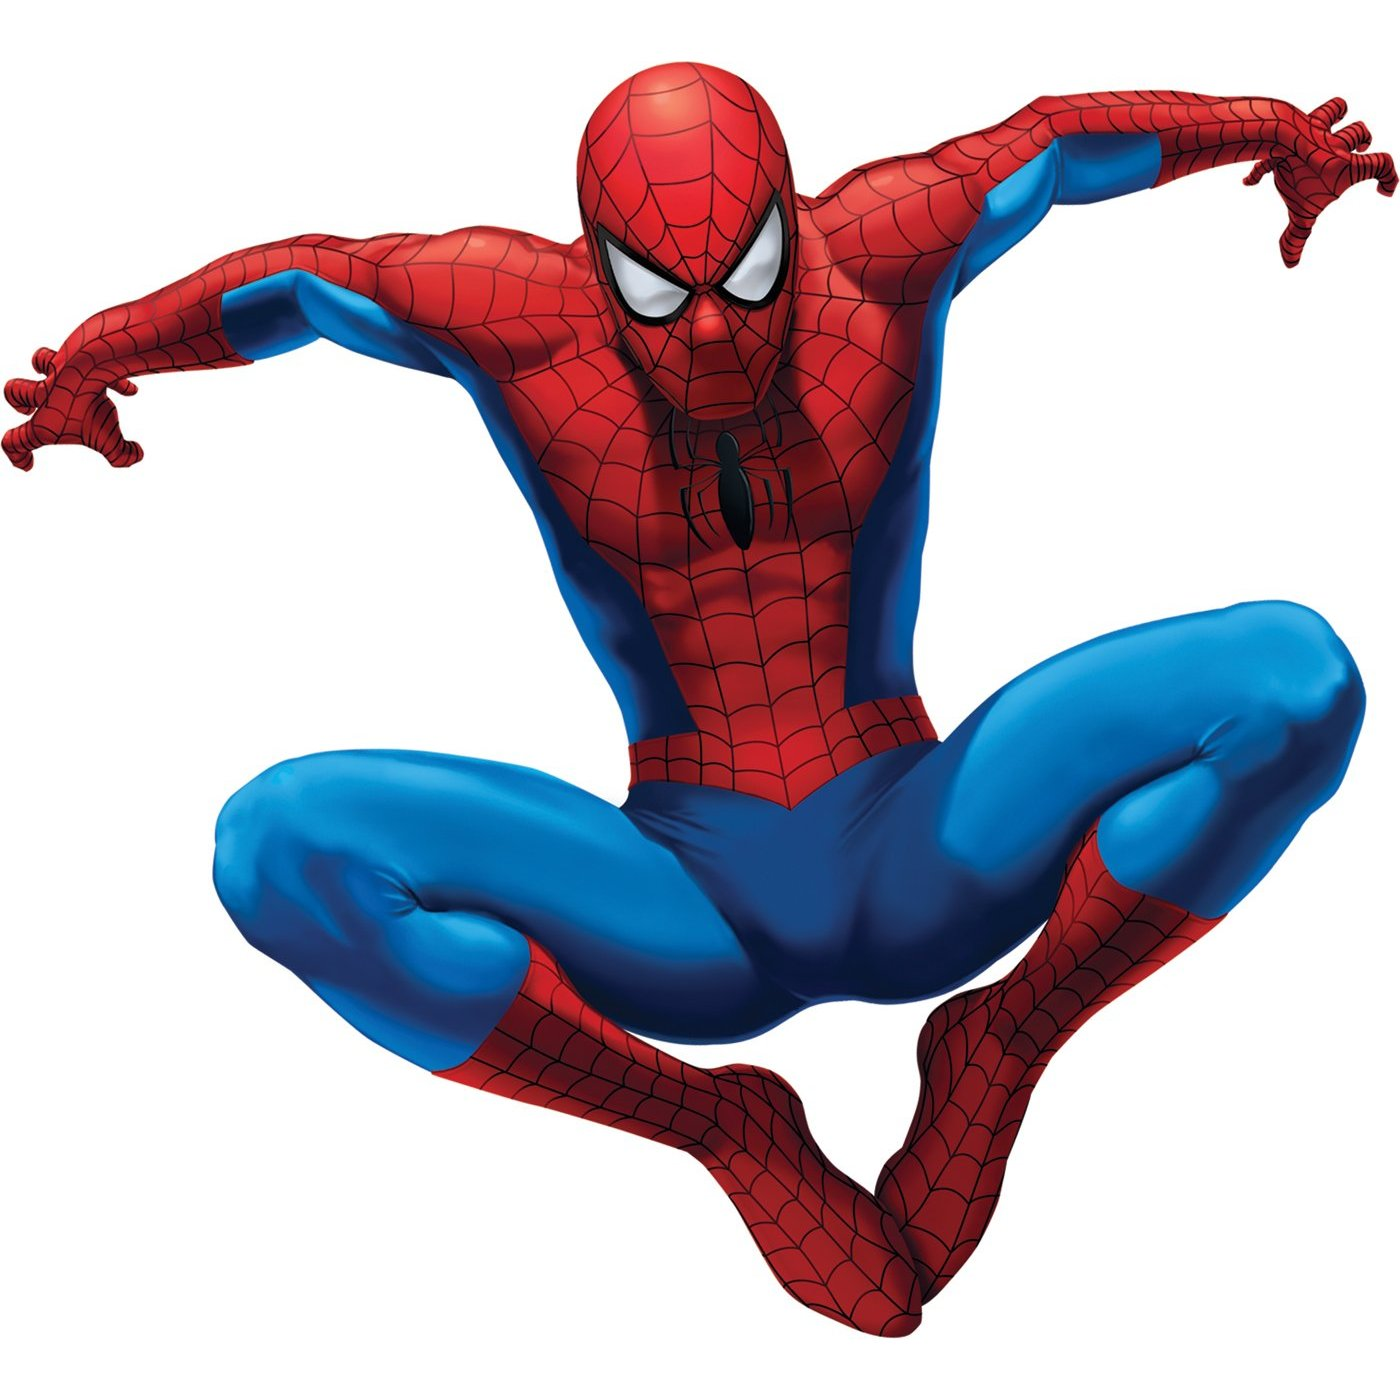 Dessins en couleurs imprimer spiderman num ro 527045 - Image spiderman ...